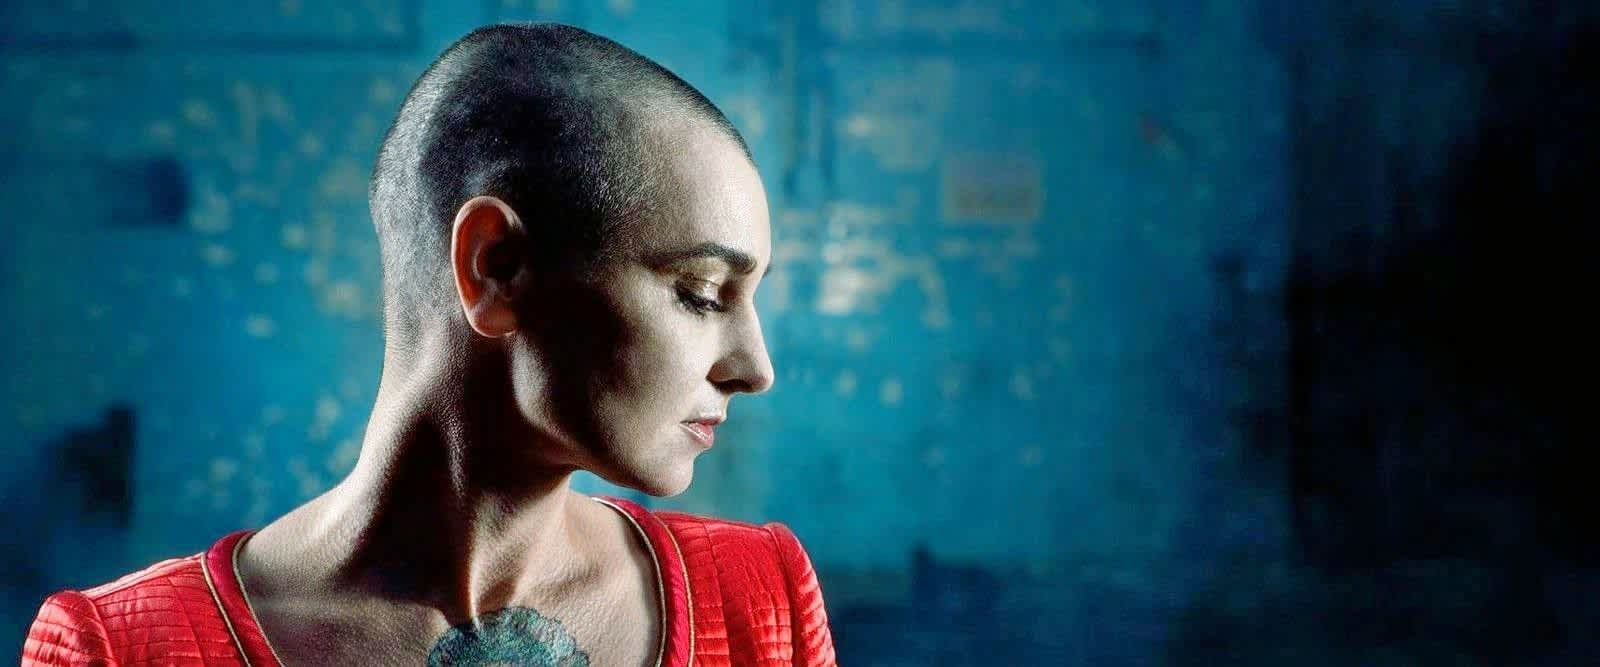 Sinead O Connor Tickets Sinead O Connor Concert Tickets And Tour Dates Stubhub